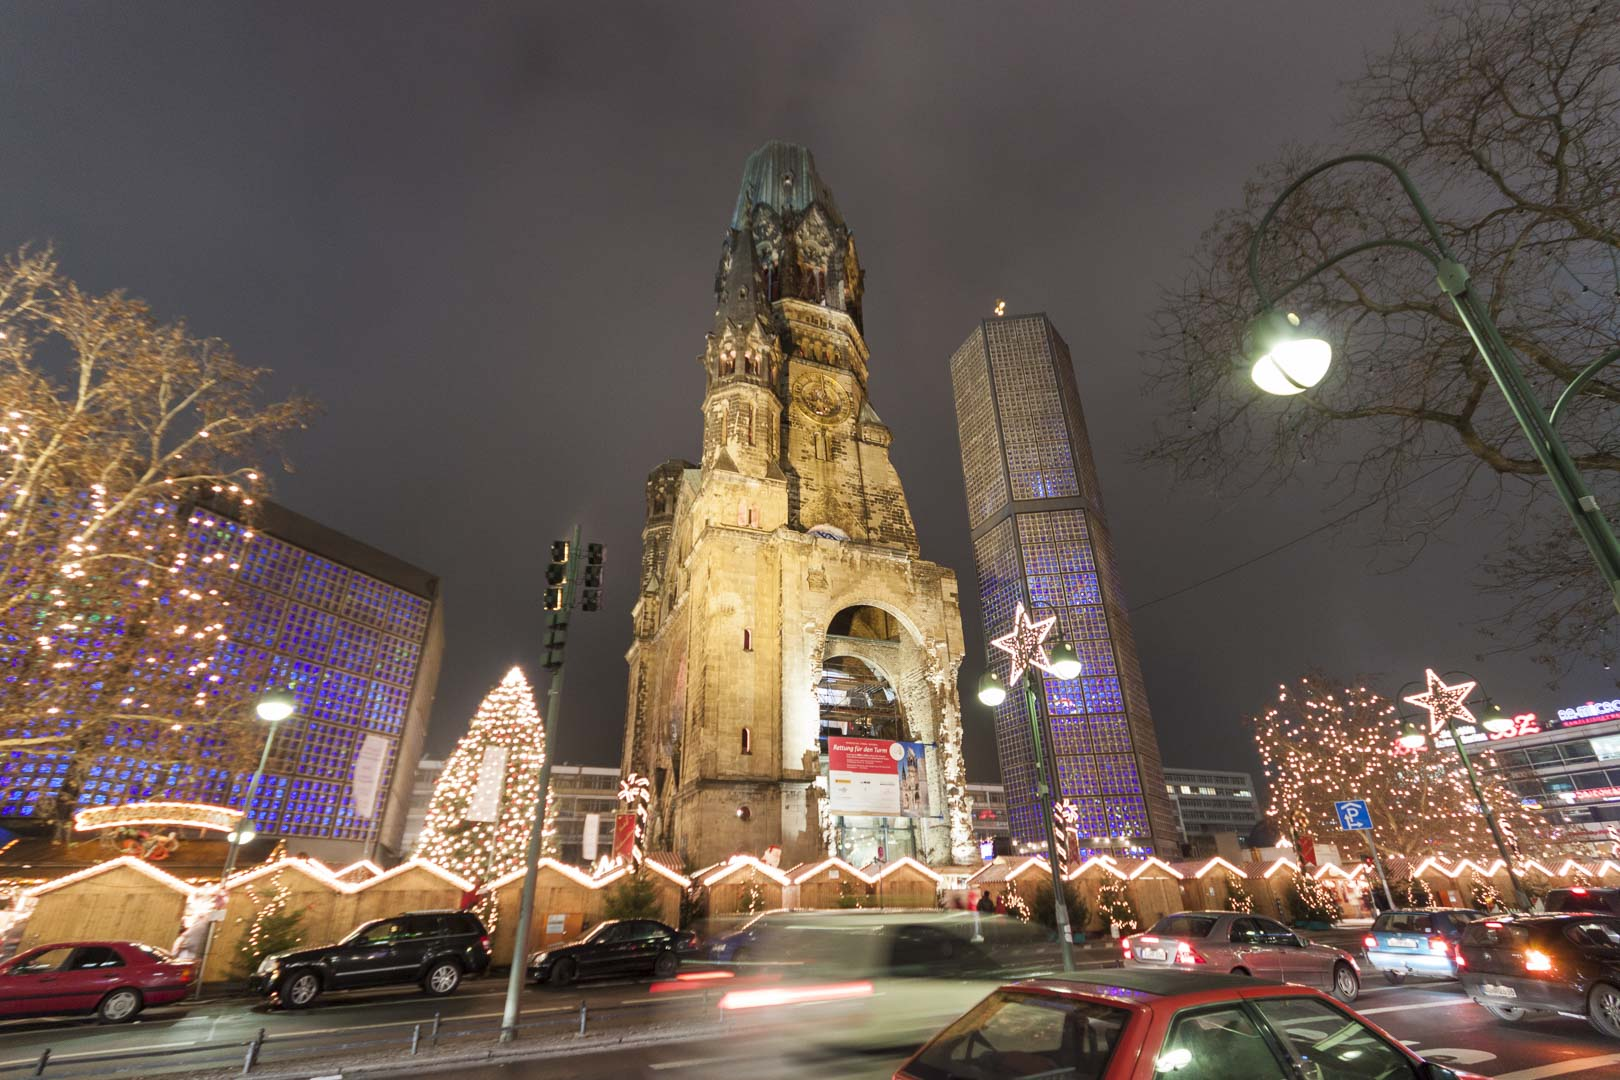 Kaiser Wilhelm Memorial Church in Berlin – Germany